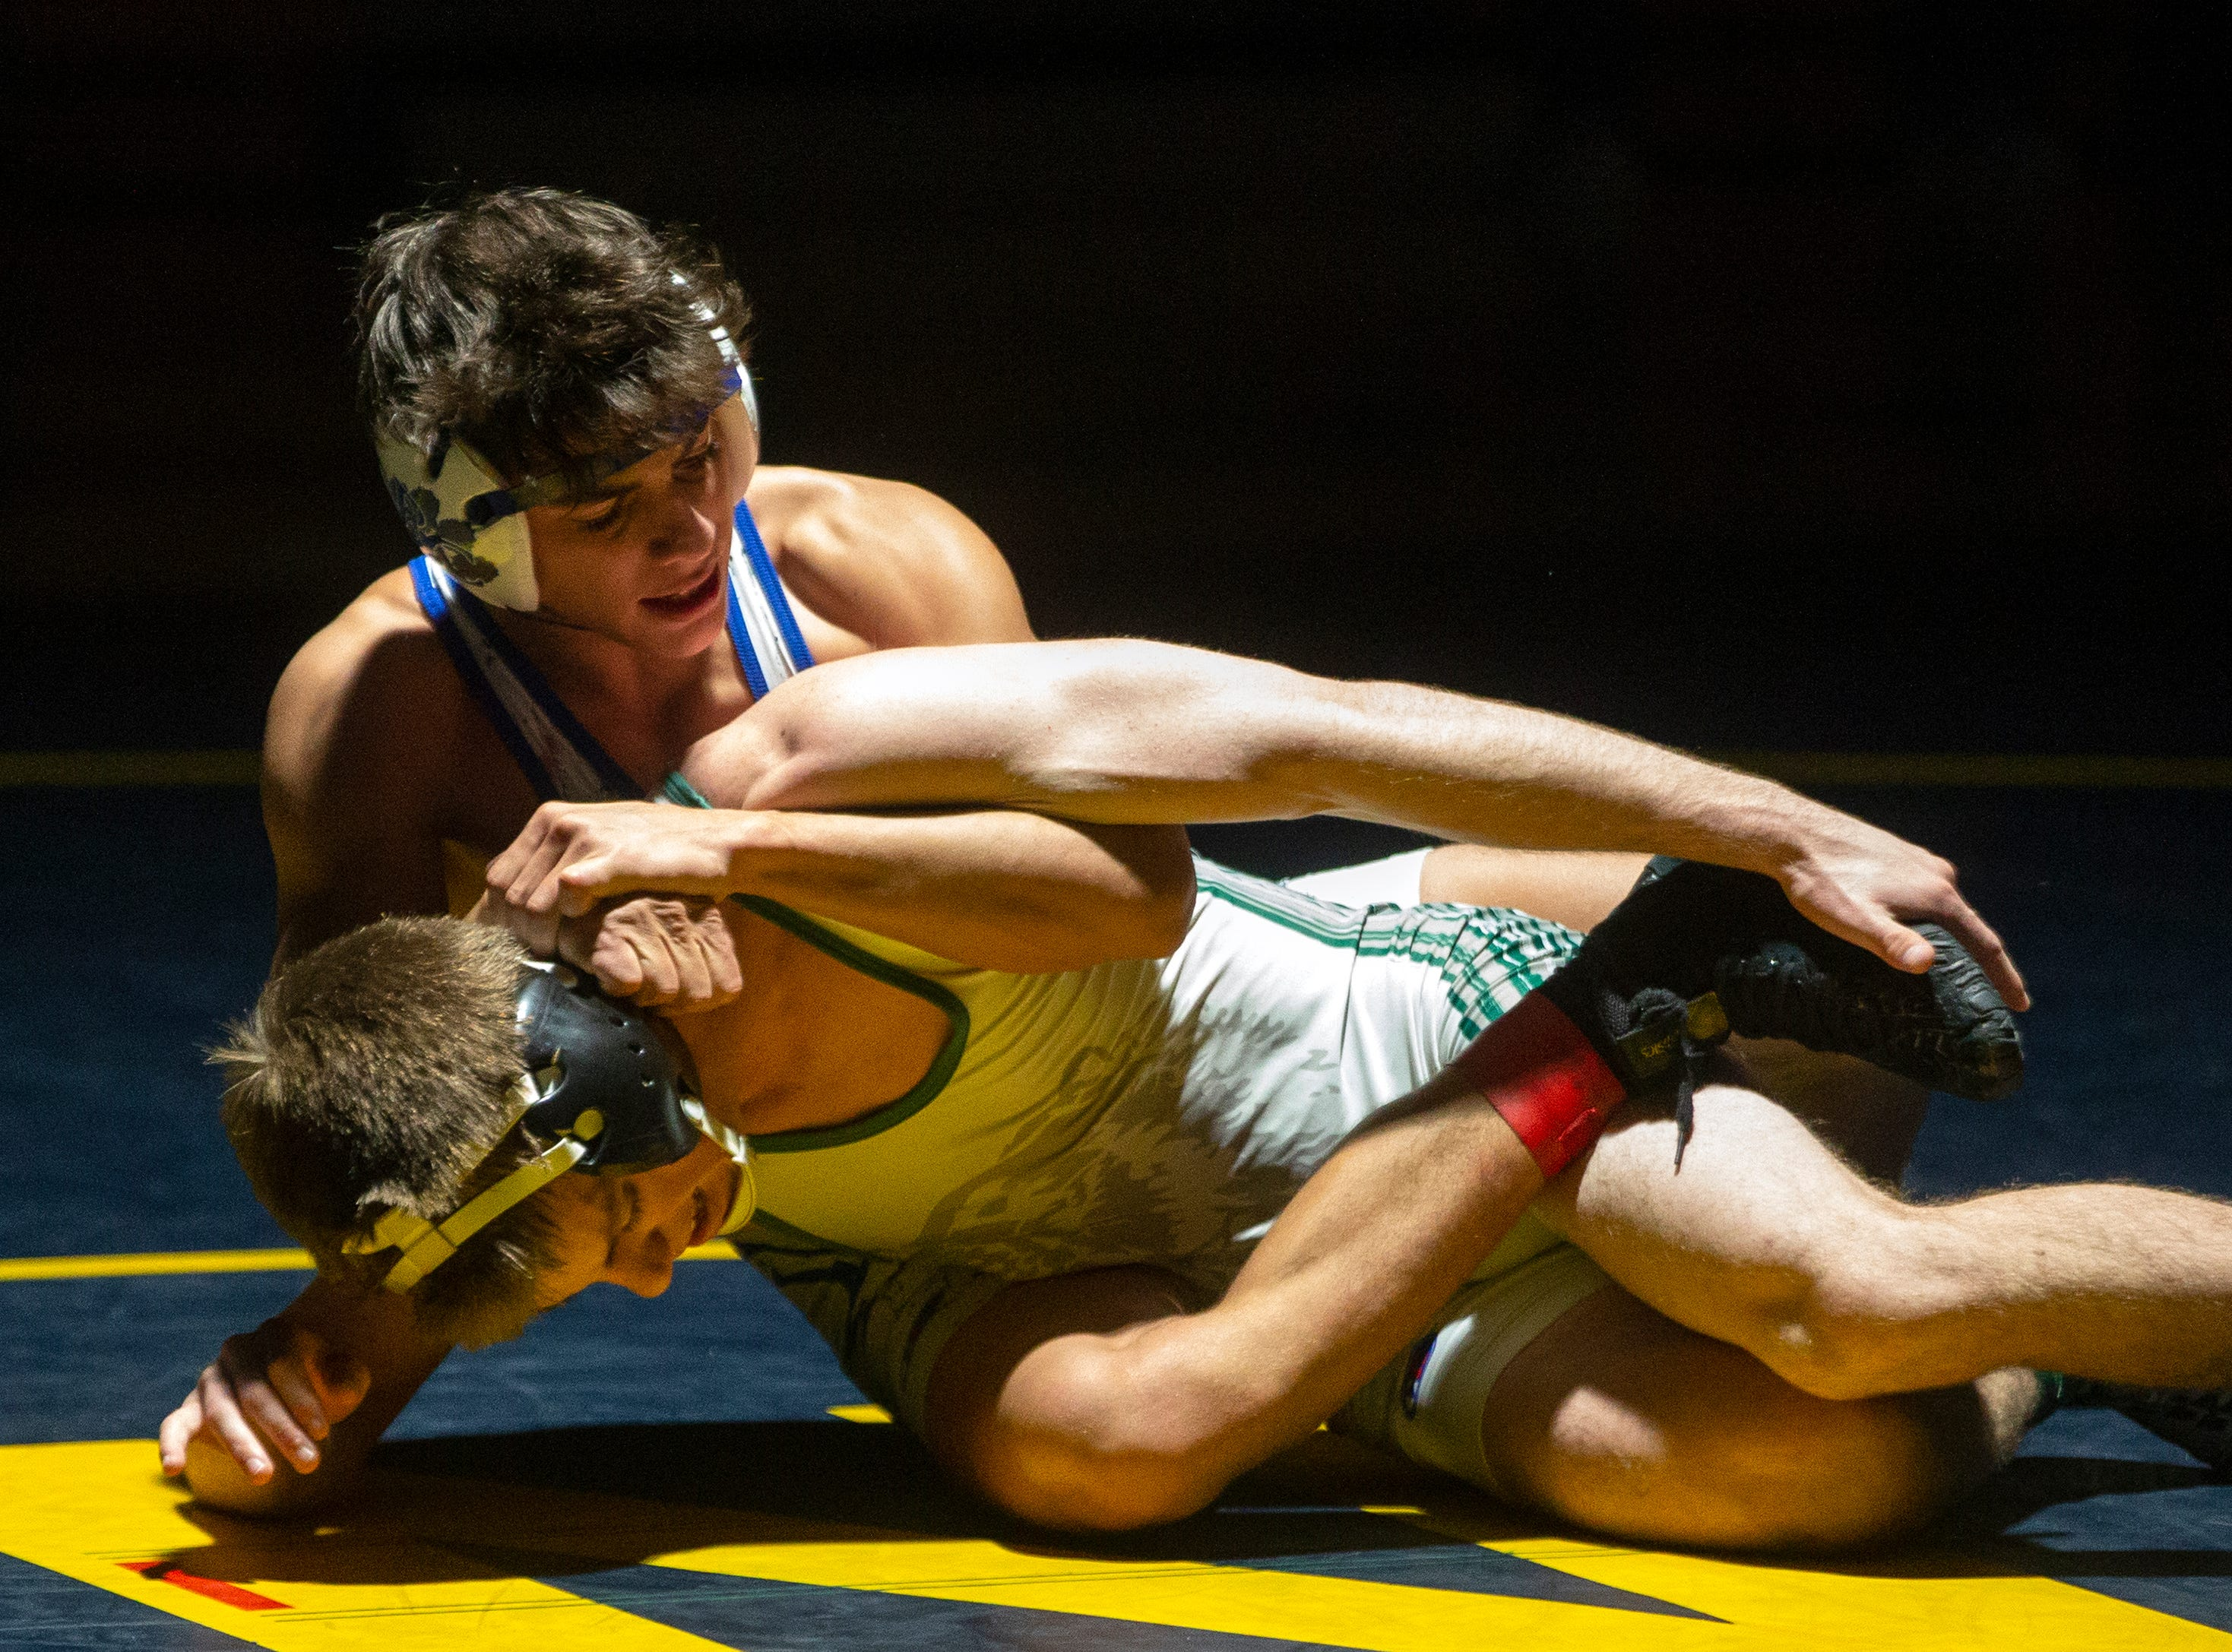 Palmetto Ridge High School's Ben McCallister, top, wrestles Barron G. Collier High School's Roy Chiong in the 120-pound match up during the Collier County Athletic Conference wrestling championship, Wednesday, Jan. 9, 2018, at Naples High School.